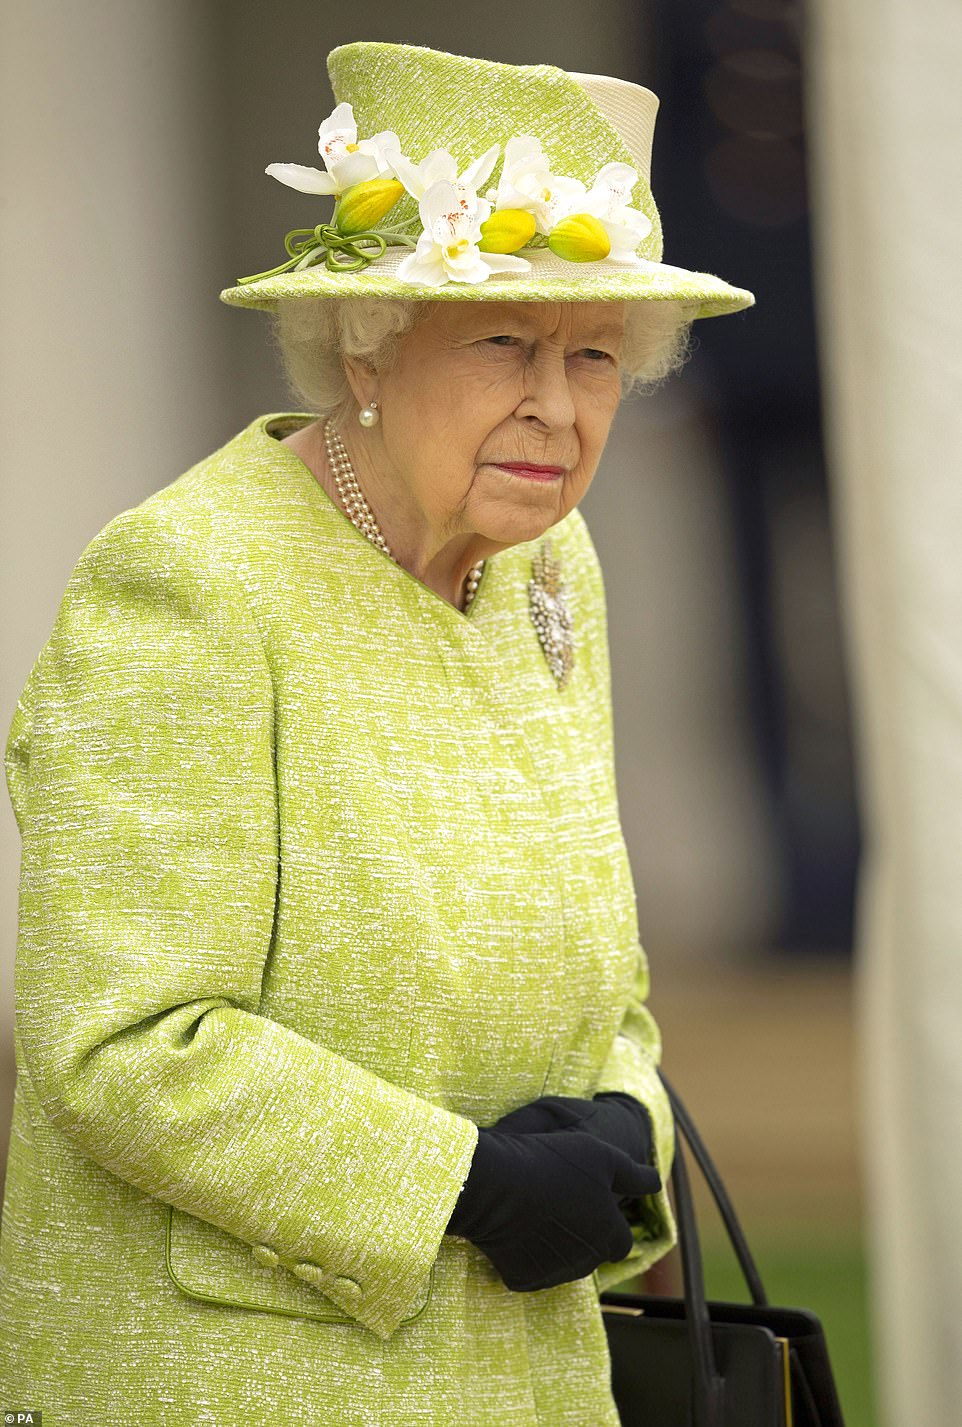 The event is the head of state's first public engagement outside Windsor Castle this year and is being held at the Commonwealth War Graves Commission